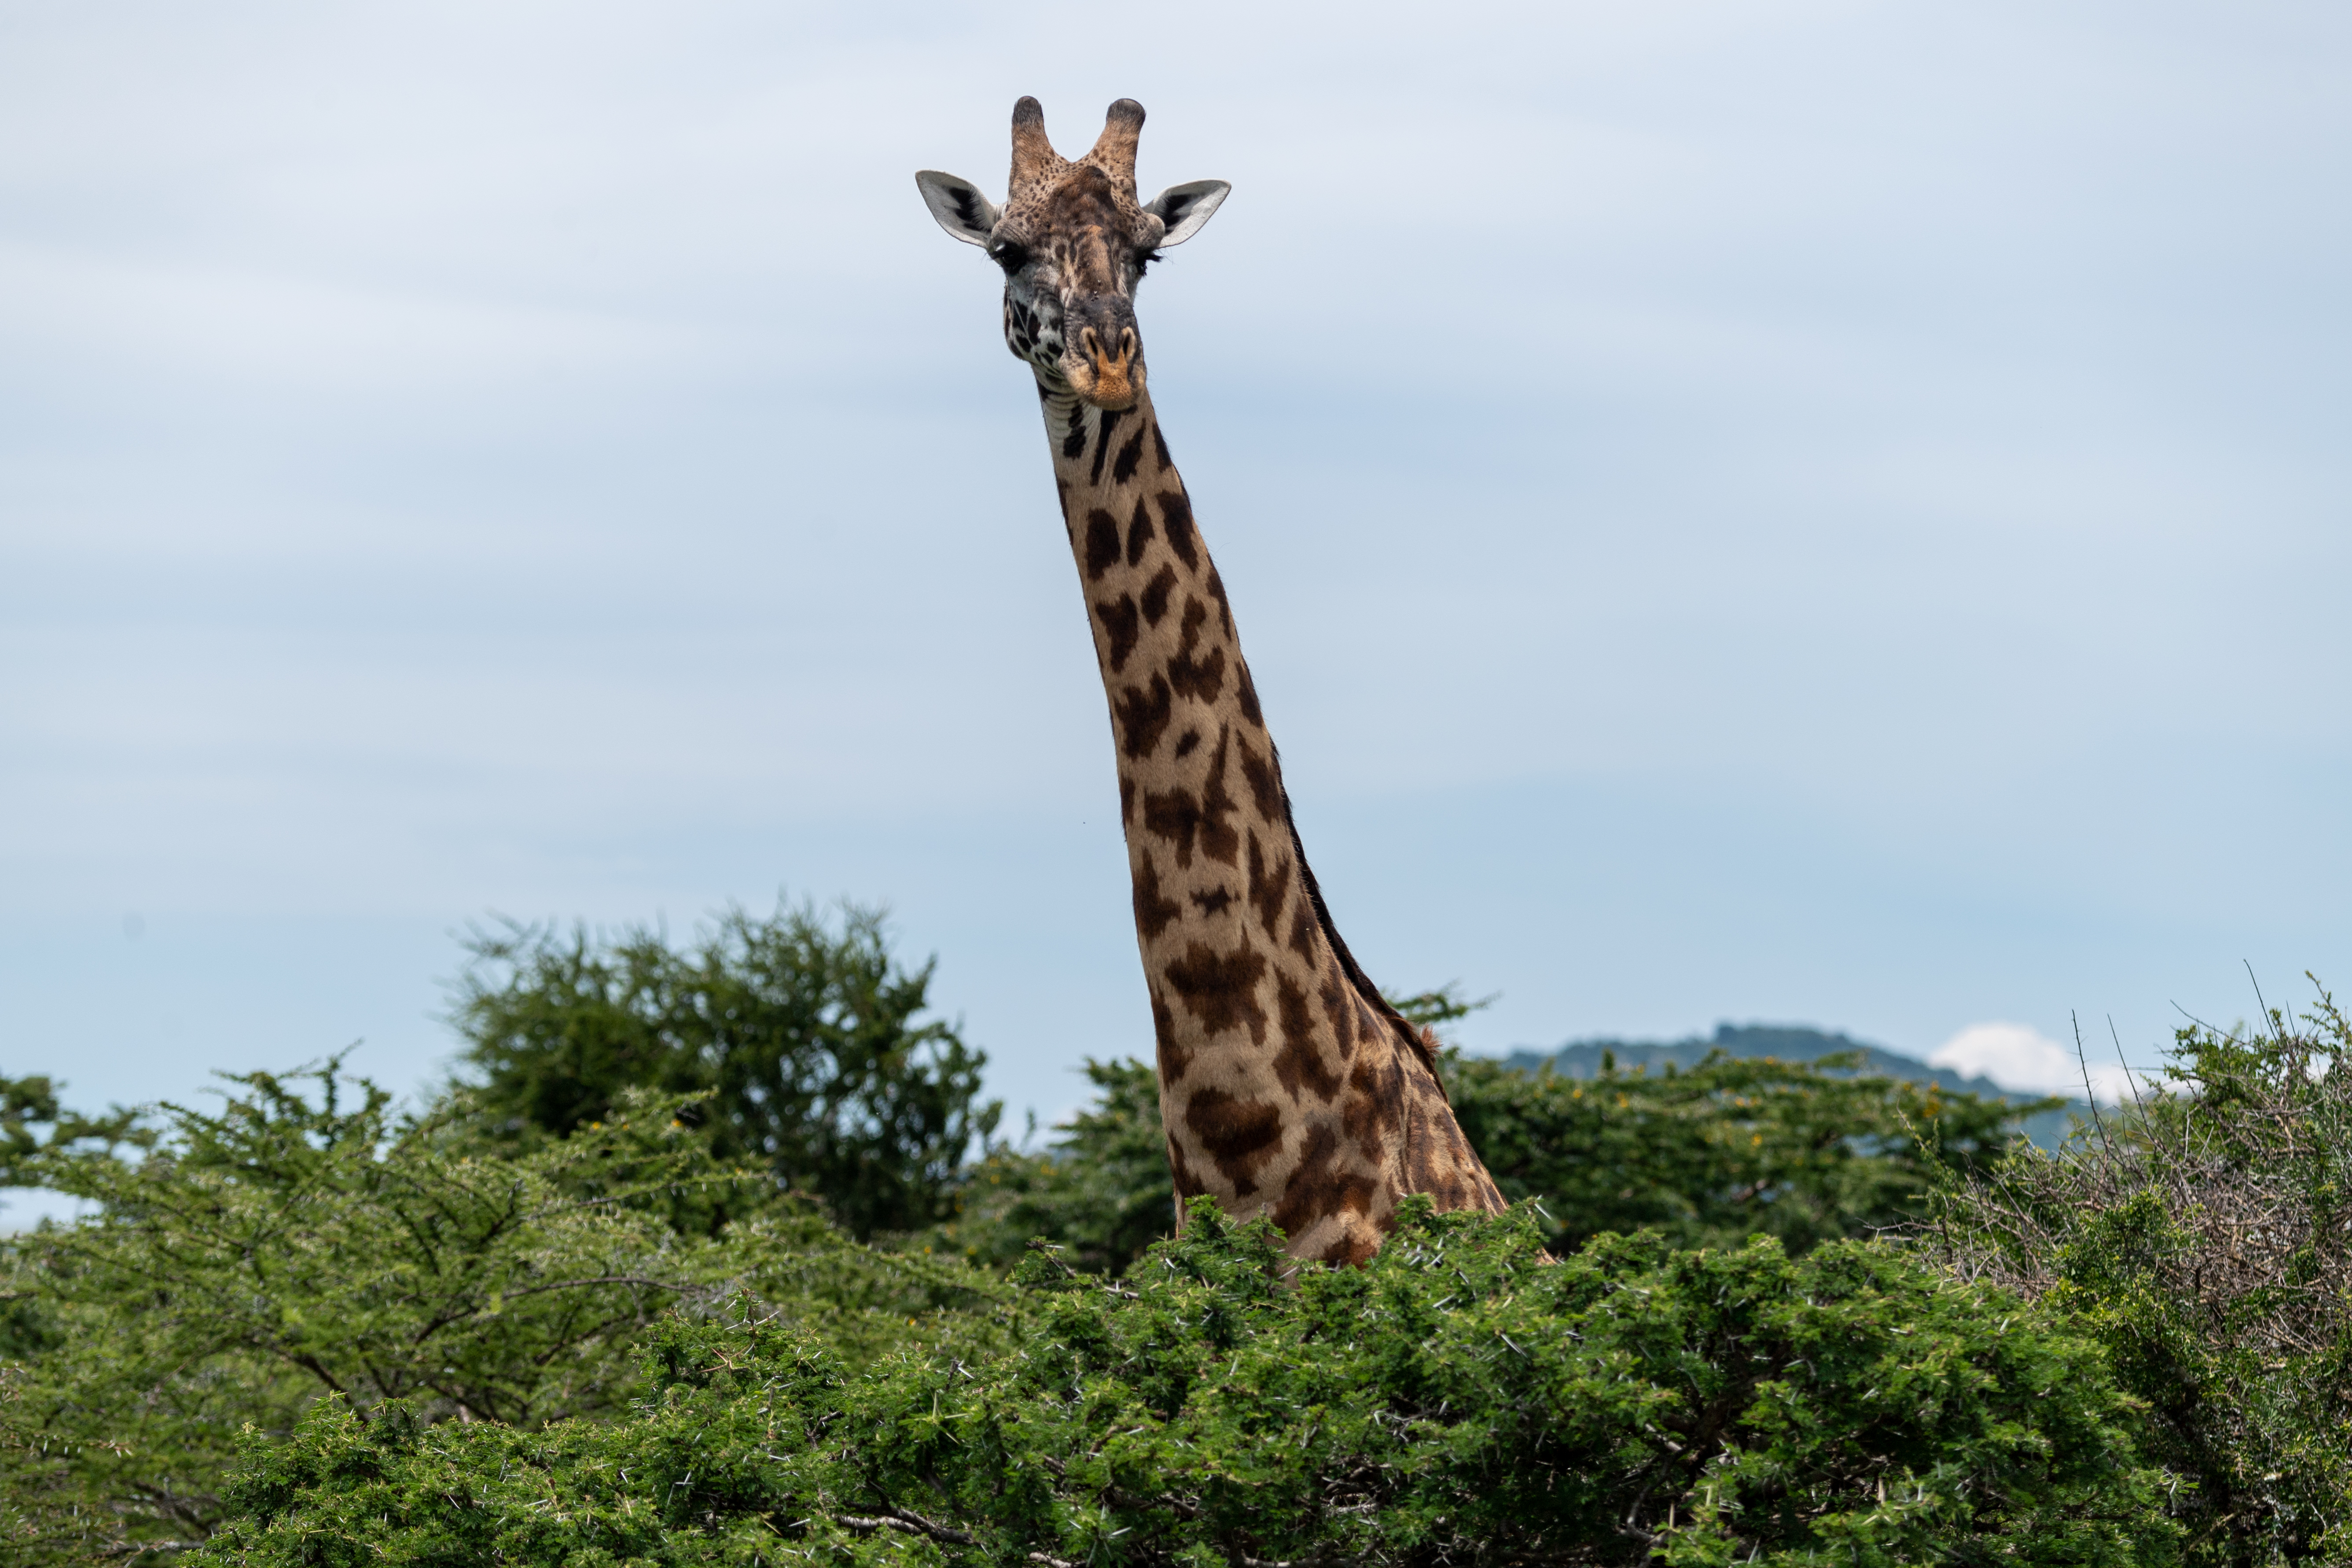 155098 download wallpaper Animals, Giraffe, Trees, Animal, Wildlife screensavers and pictures for free